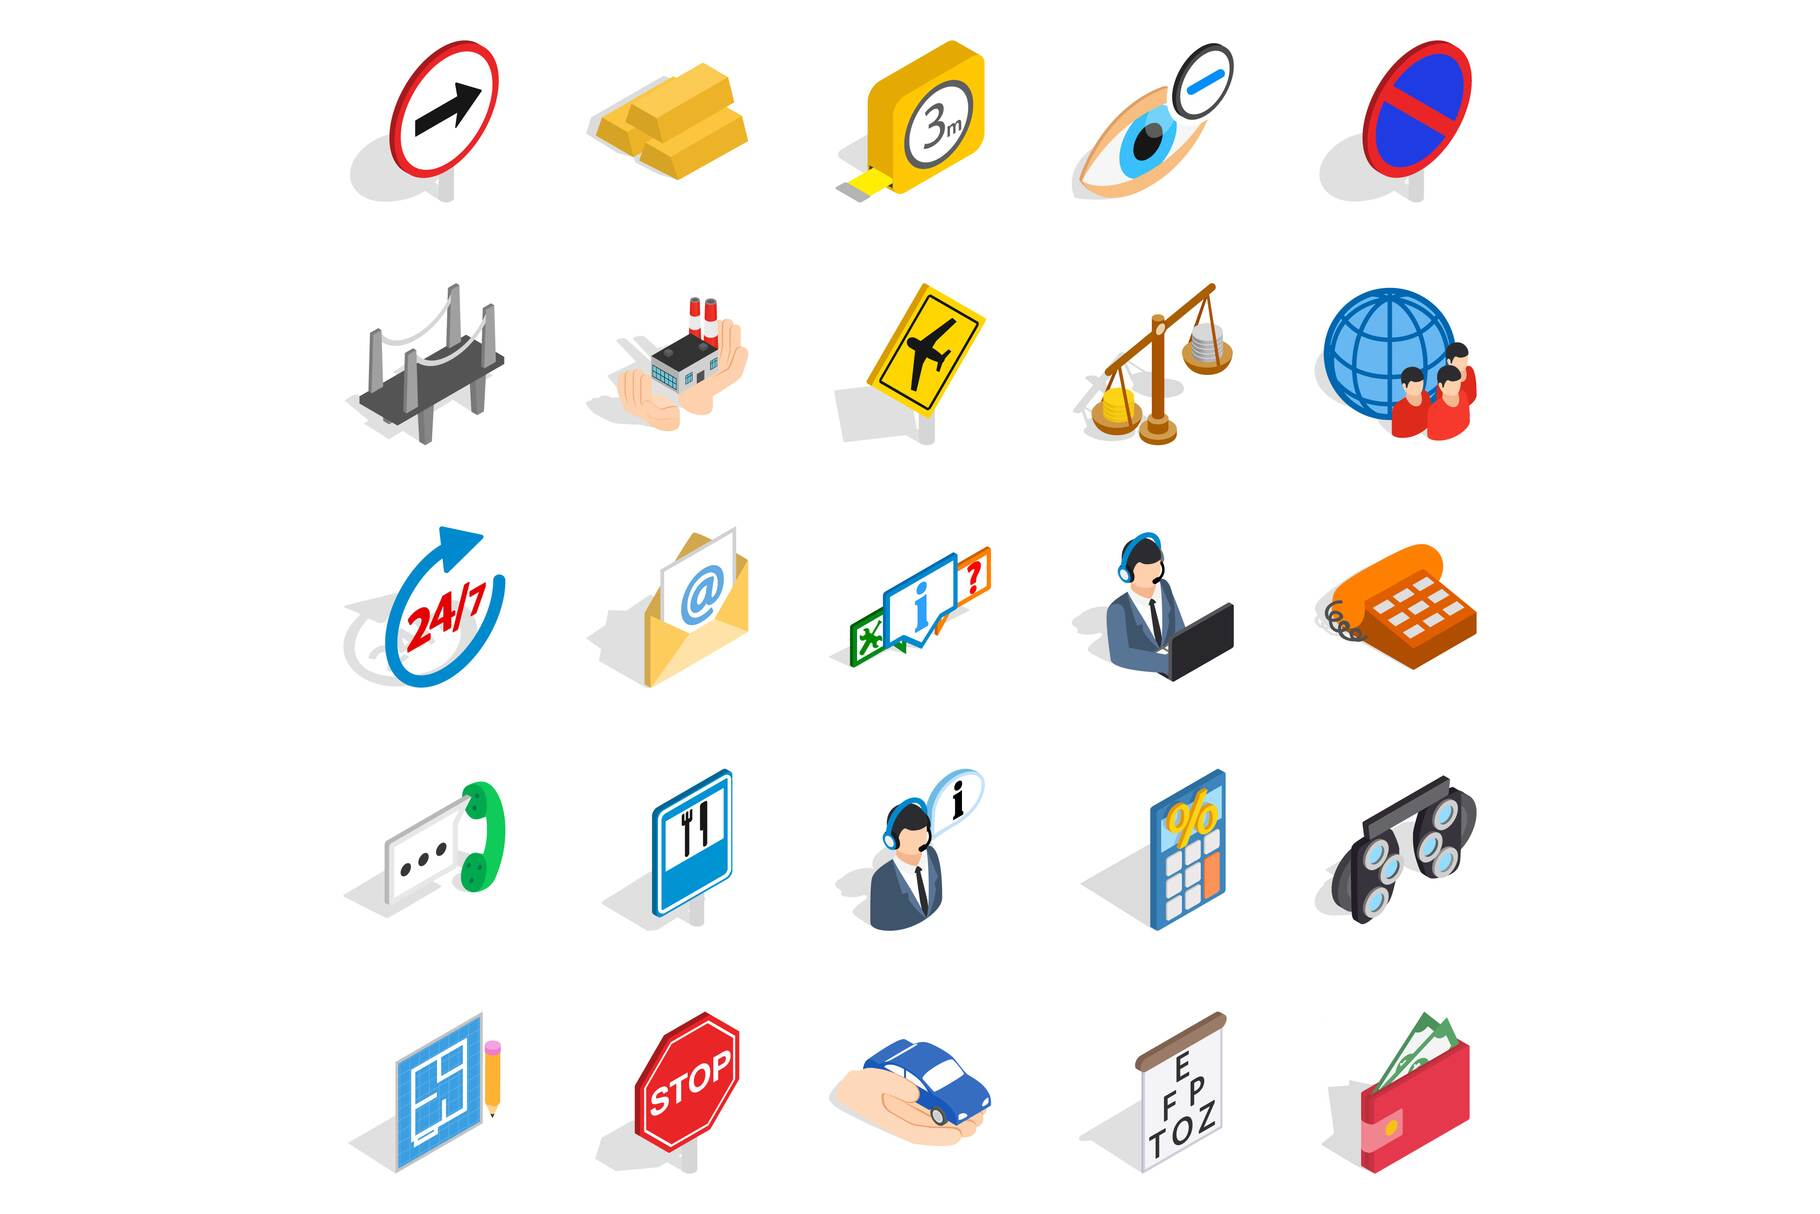 Look after icons set, isometric style example image 1